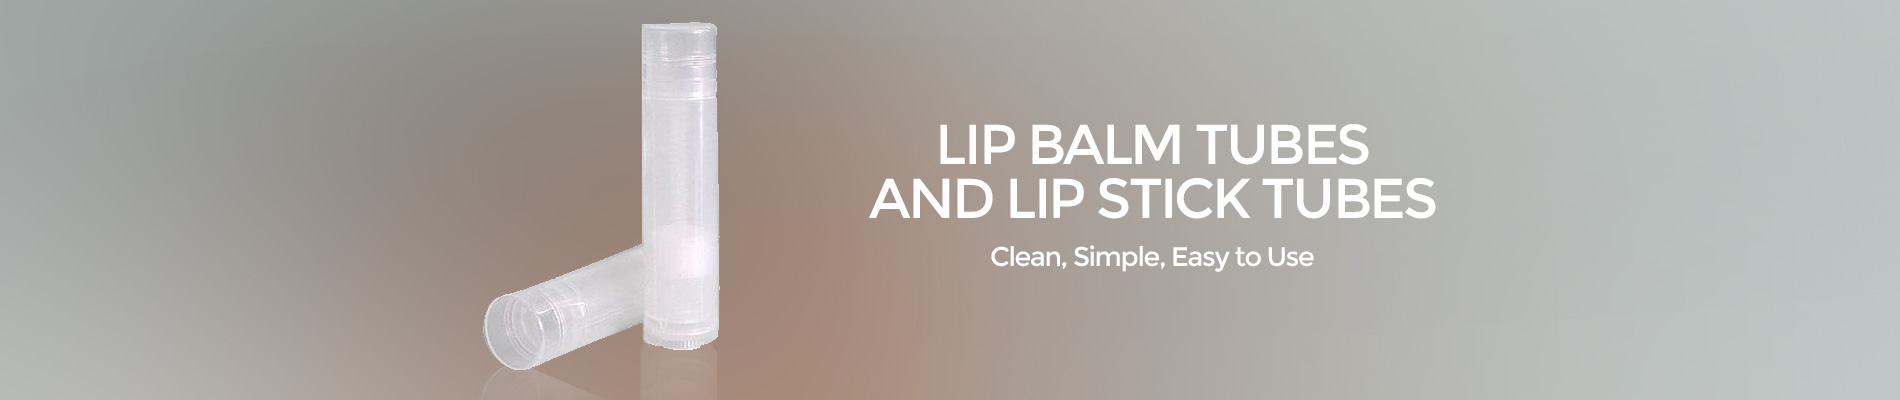 Lip Balm Tubes & Lip Stick Tubes at Wholesale Prices from New Directions Aromatics